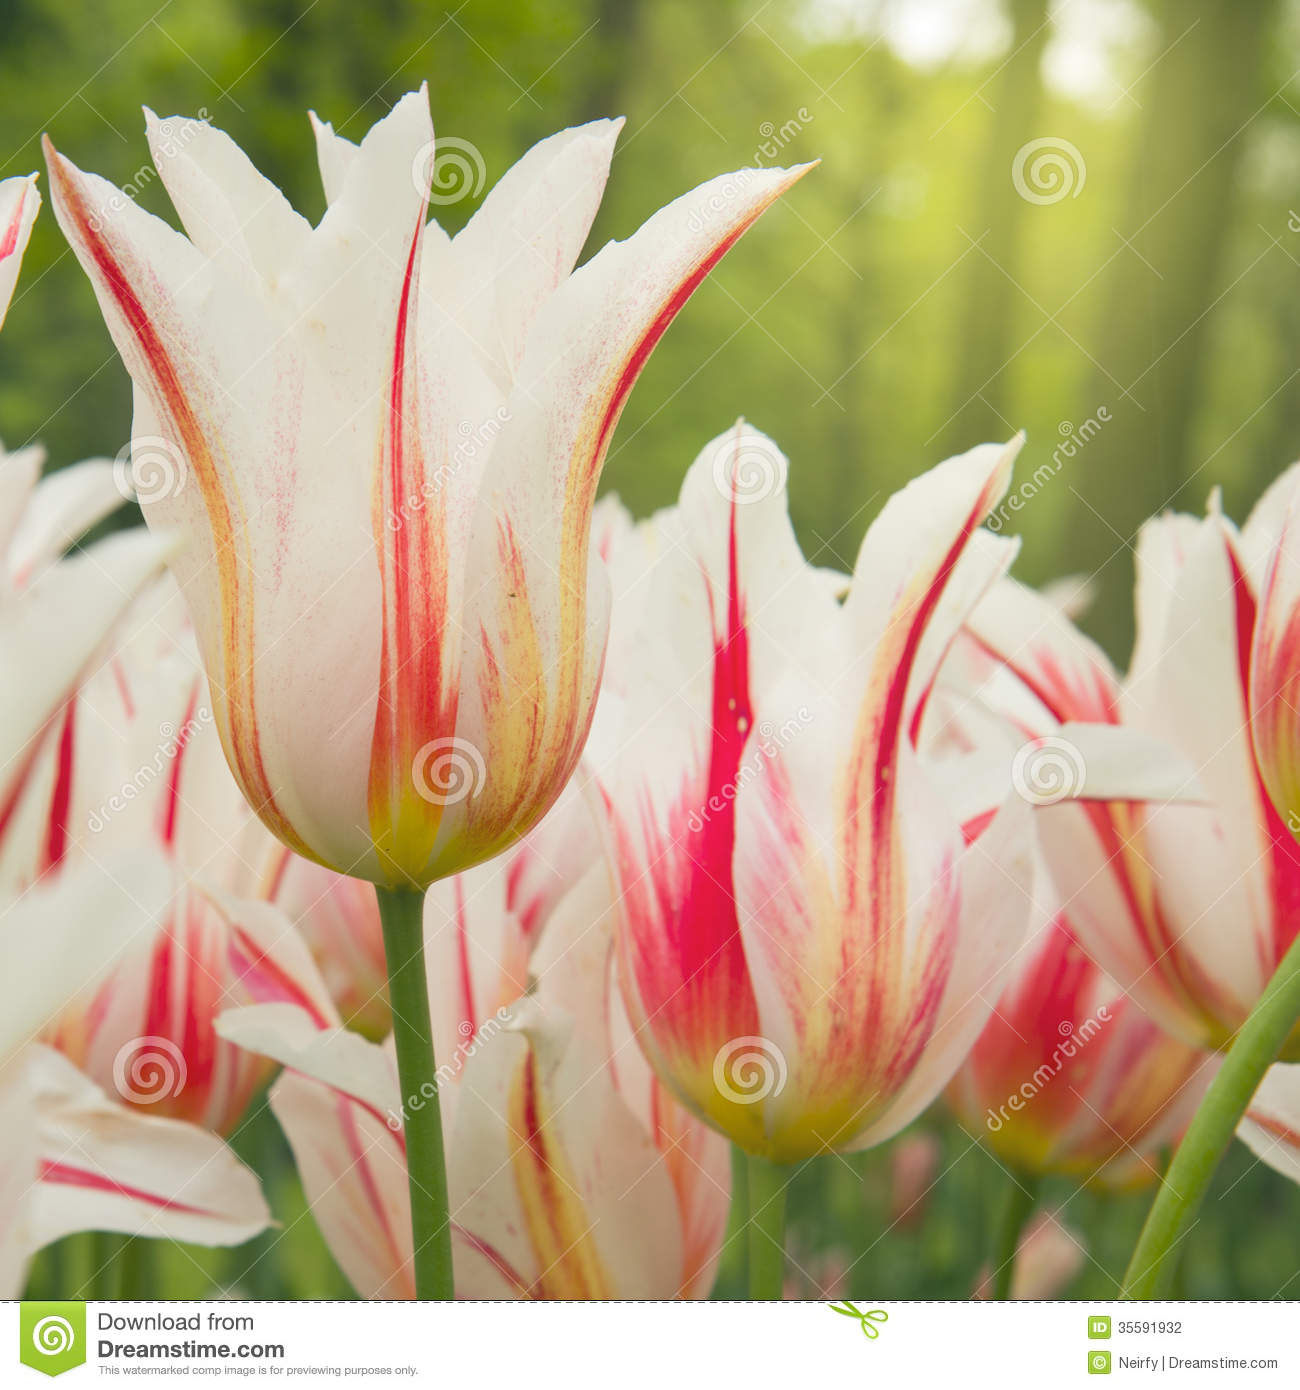 Spring Tulips Close Up Stock Photography - Image: 35591932: dreamstime.com/stock-photography-spring-tulips-close-up-dutch-white...